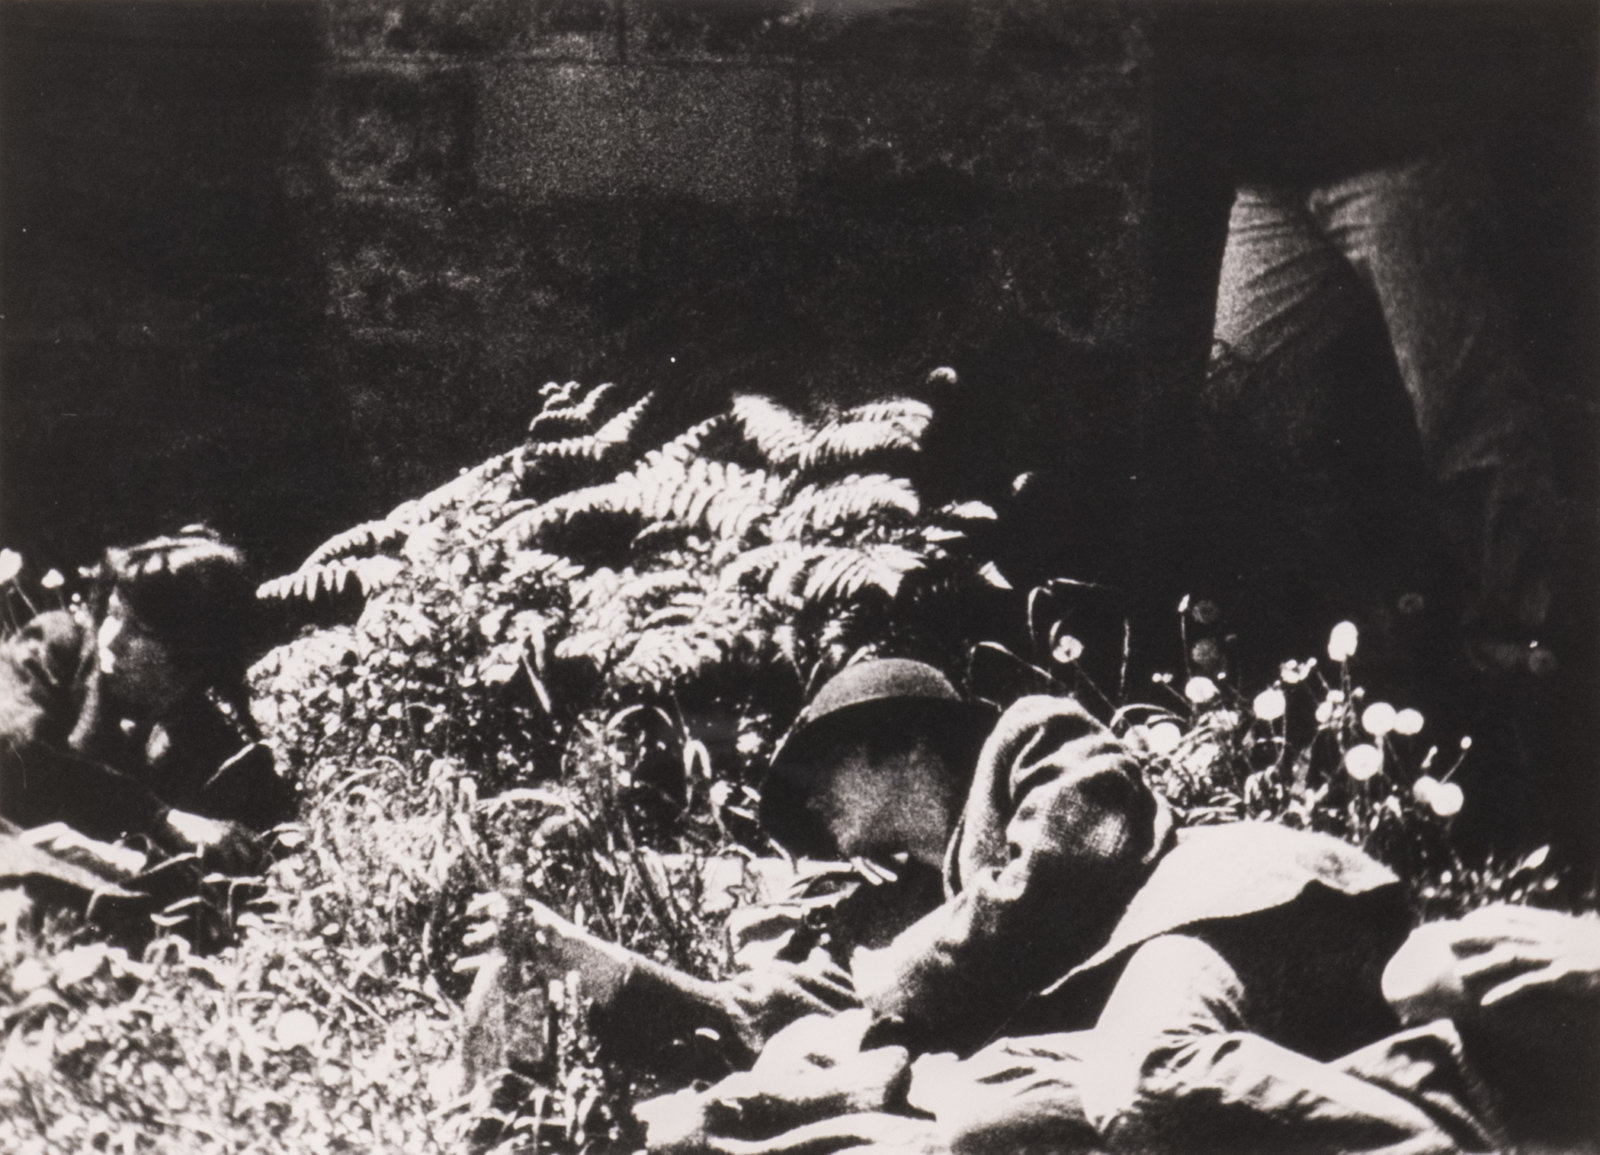 Ian Wallace, Poverty (detail), 1980, 8 black and white photographs, 11 x 120 in. (28 x 305 cm)